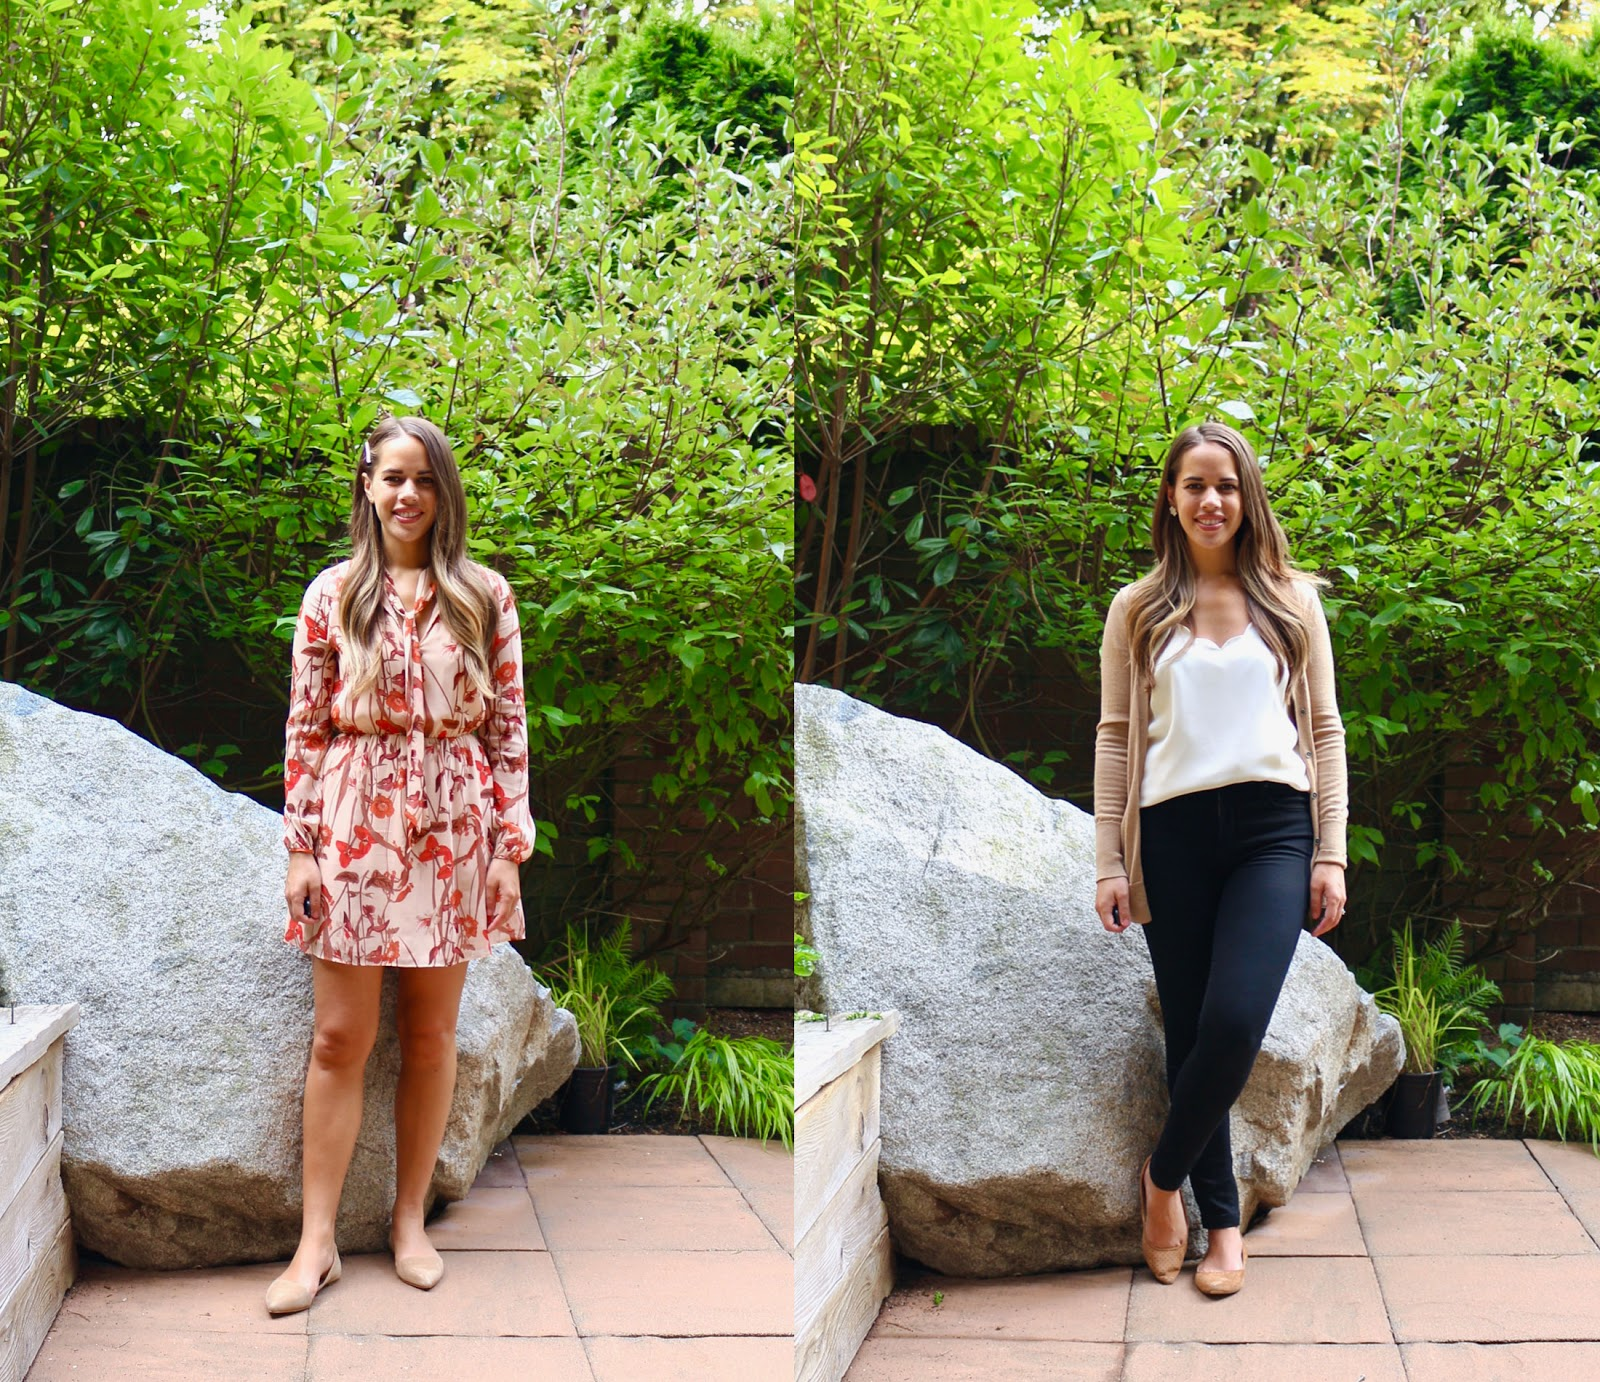 Jules in Flats - July Outfits Week One (Business Casual Workwear on a Budget)